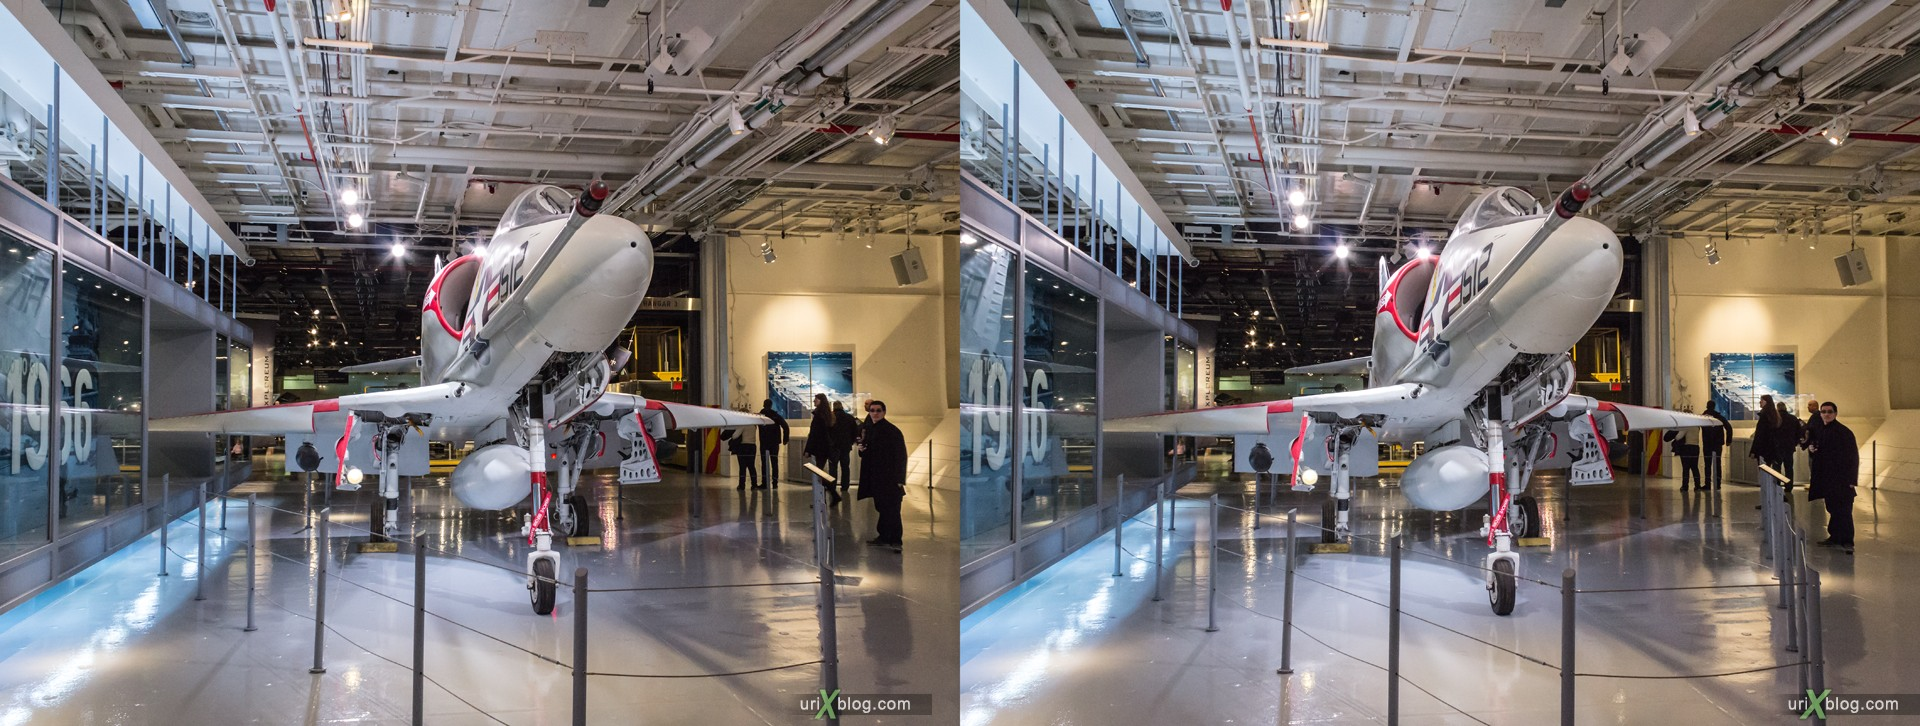 2013, USA, NYC, New York, aircraft carrier Intrepid museum, A-4 Skyhawk, sea, air, space, ship, submarine, aircraft, airplane, helicopter, military, 3D, stereo pair, cross-eyed, crossview, cross view stereo pair, stereoscopic